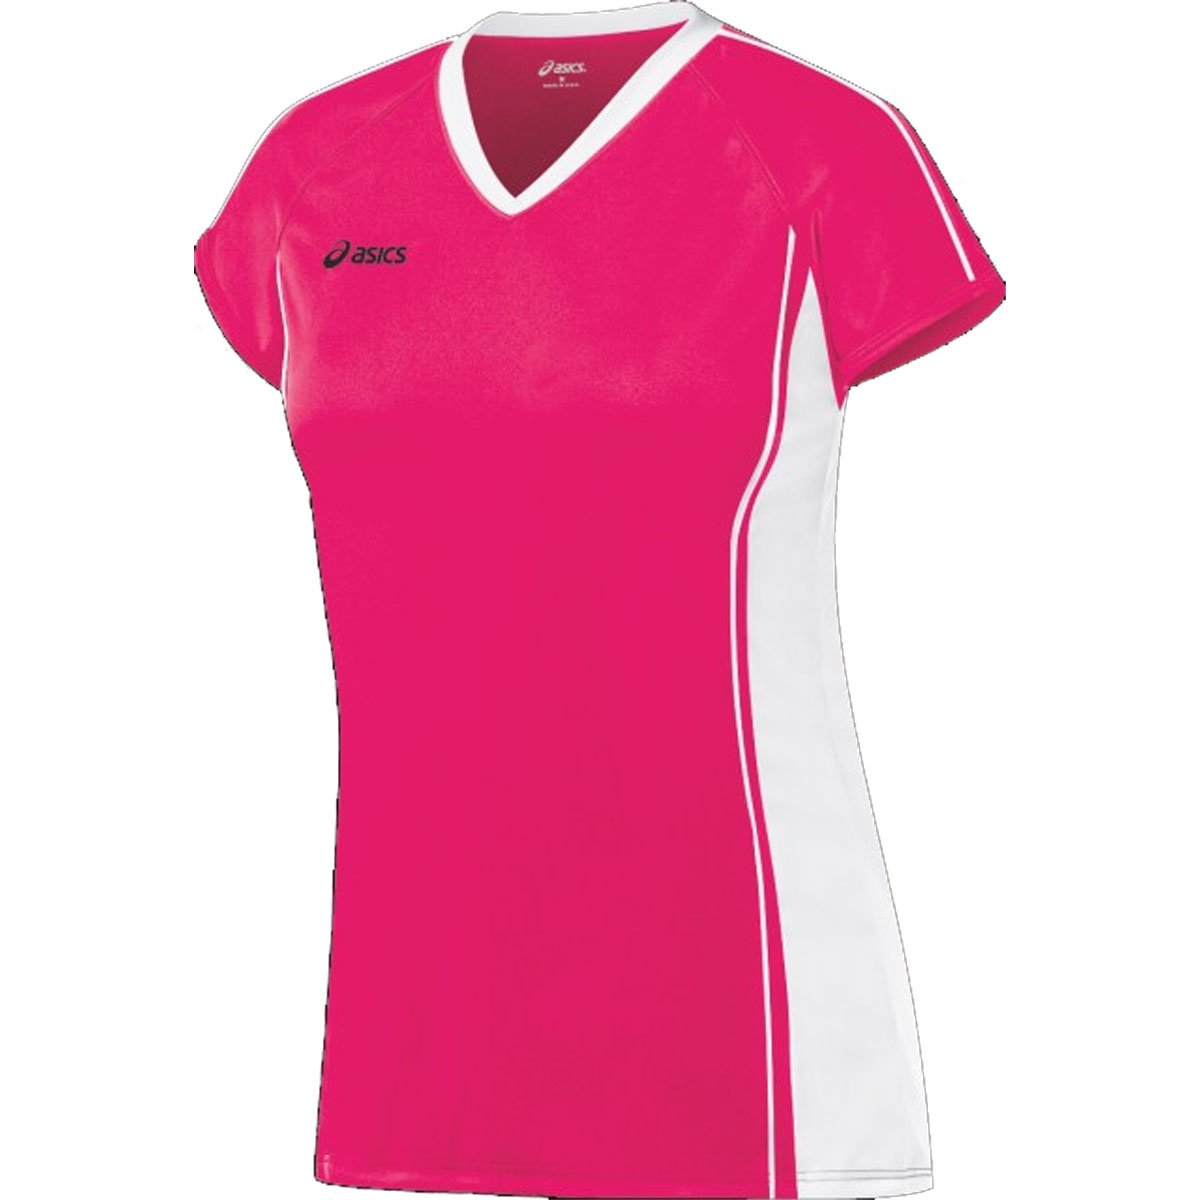 Asics Women's Replay Jersey Soccer B005AD49FY Rhapsody/White M